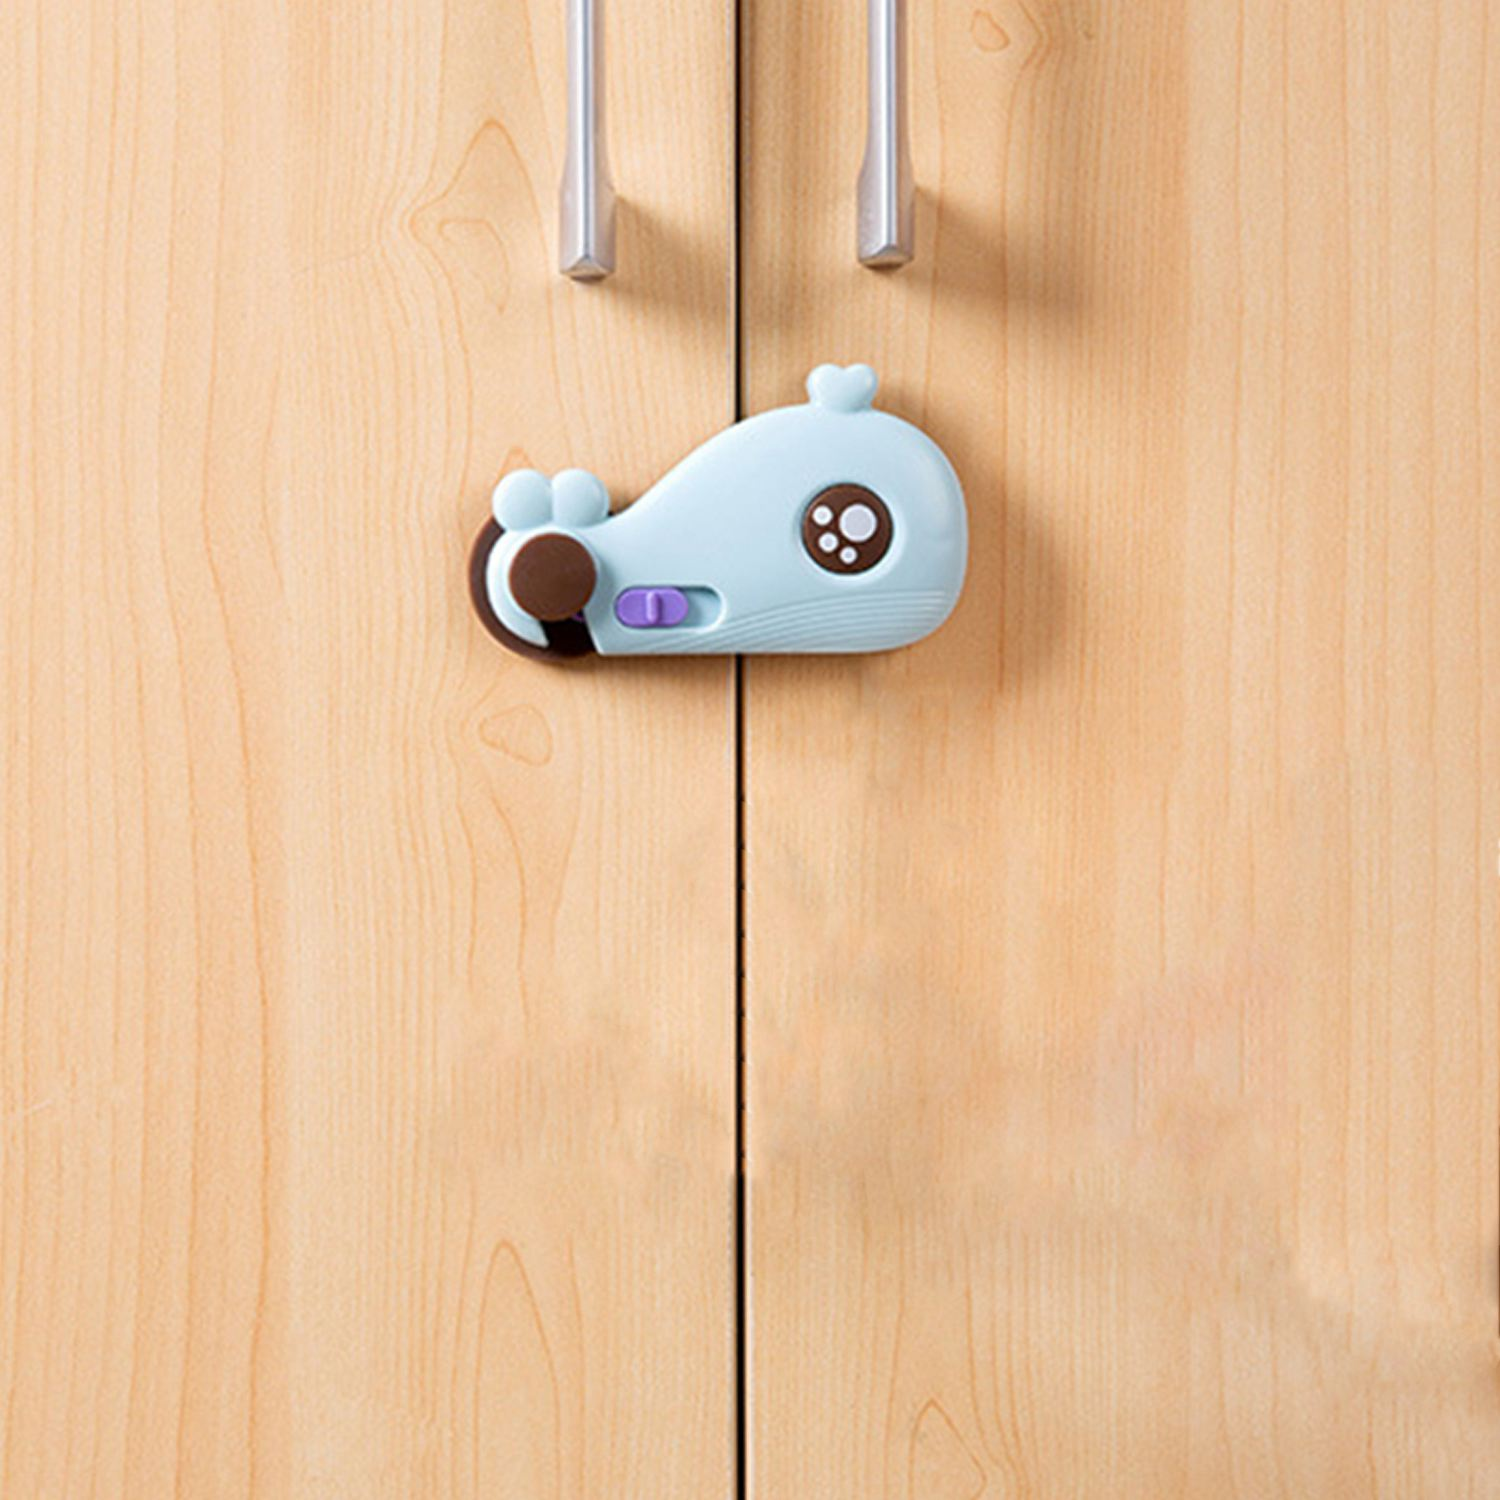 Cartoon Whale Shape Baby Safety Cabinet Door Lock Baby Kids Security Care Protector Lock For Drawer Refrigerator Cupboard